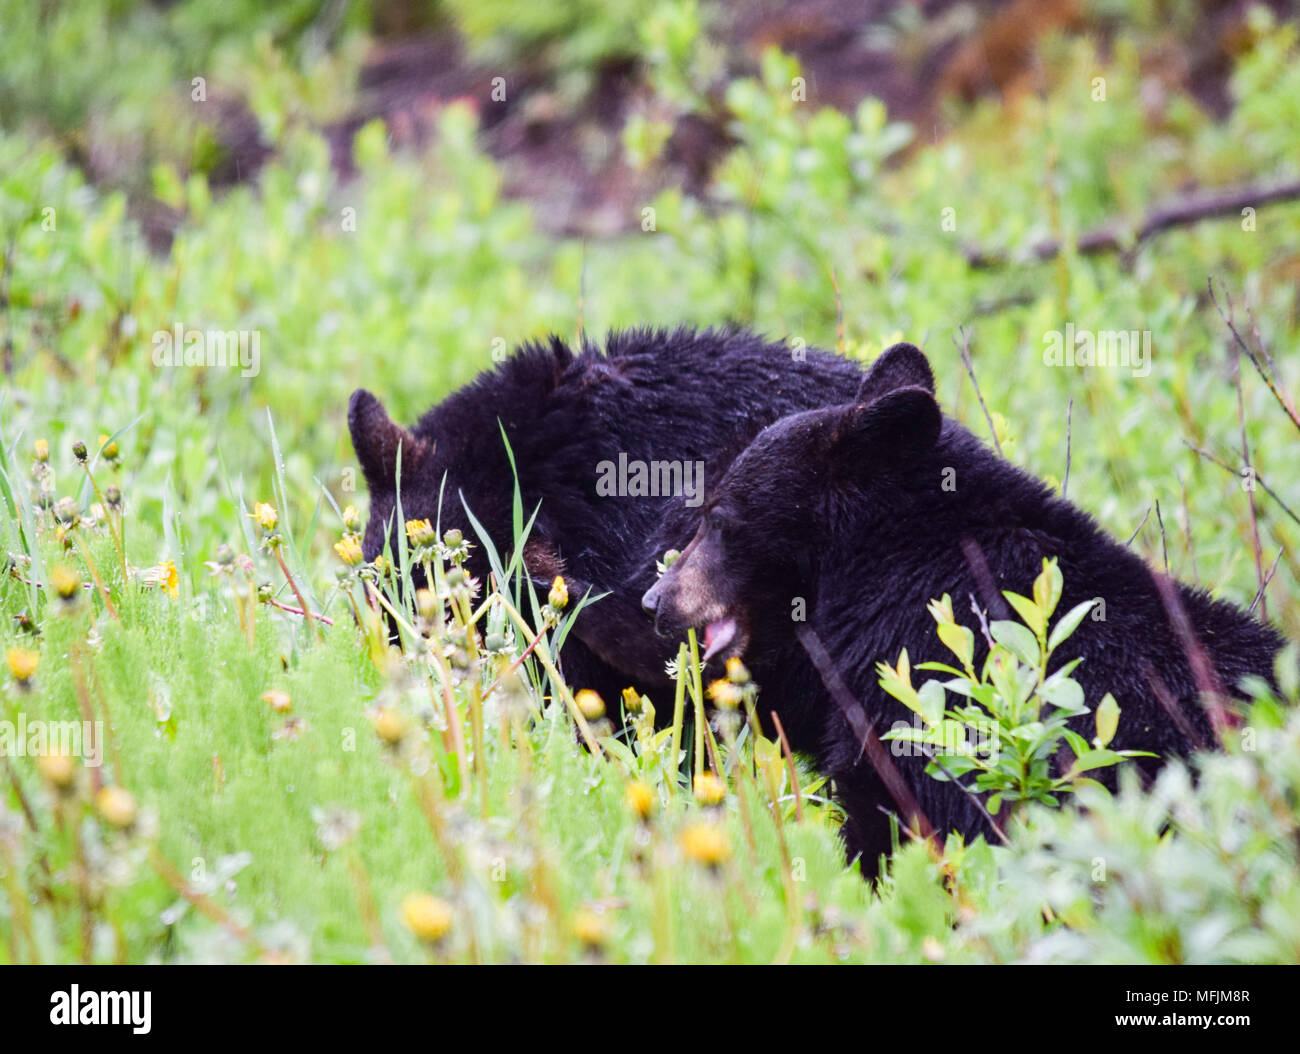 A pair of adorable black bear cub enjoys a breakfast of dandelions on a rainy cool morning in the Canadian Rocky Mountains near Banff, Alberta - Stock Image